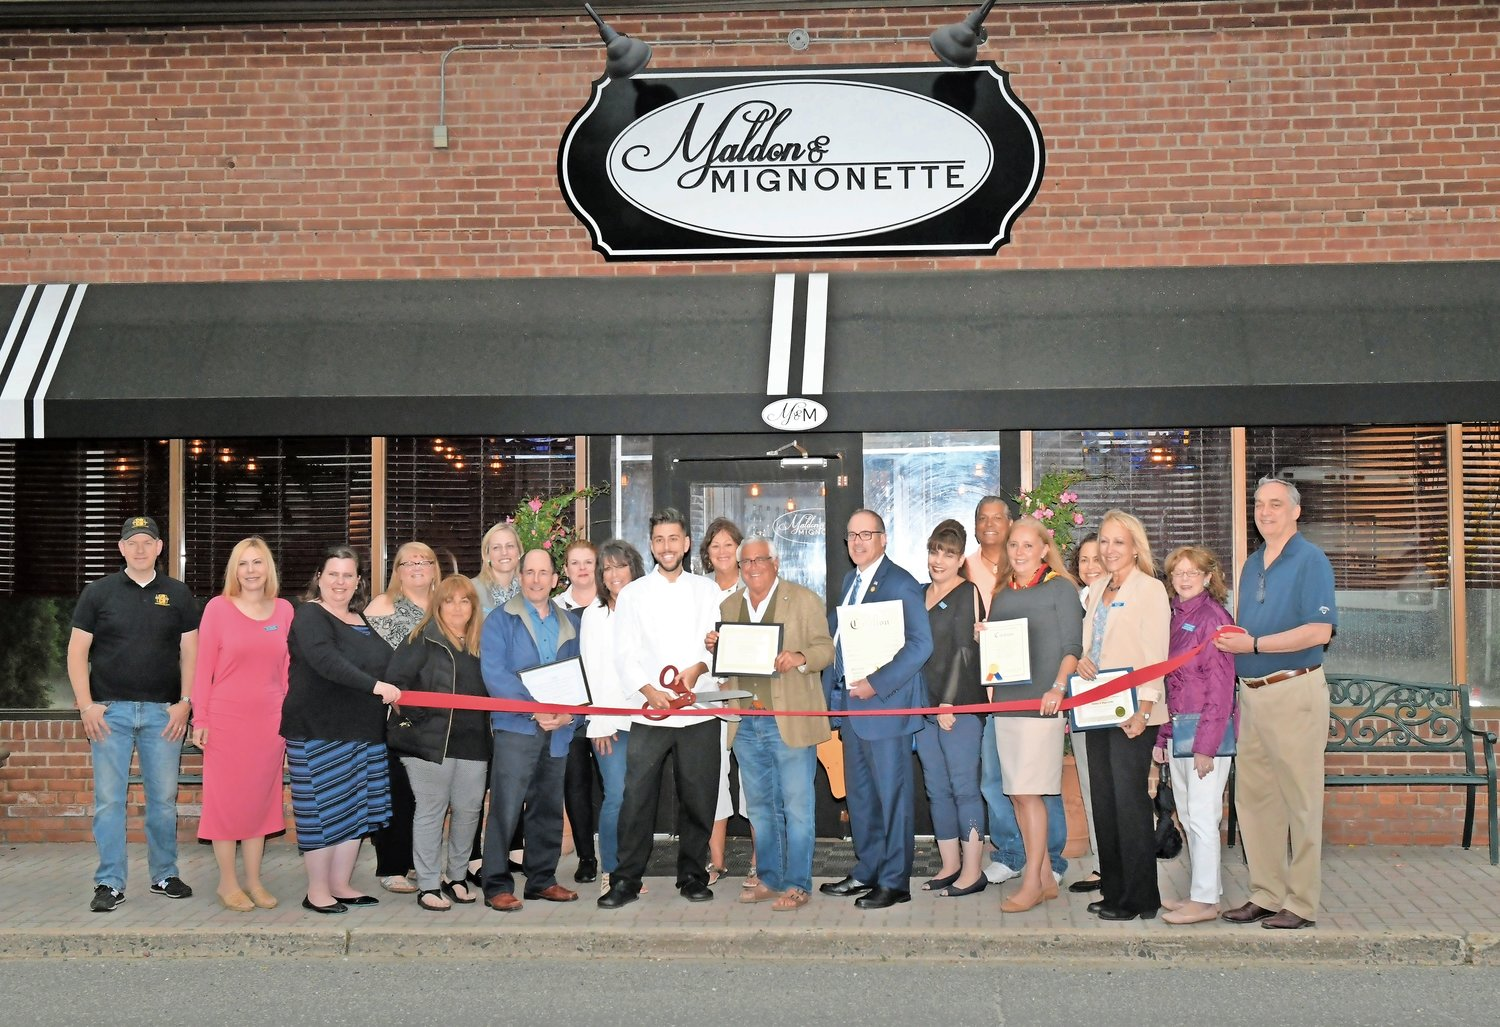 Chef Robert Occhipinti was surrounded by dignitaries, business officials and family members as he cut the ribbon in front of his restaurant, Maldon & Mignonette.